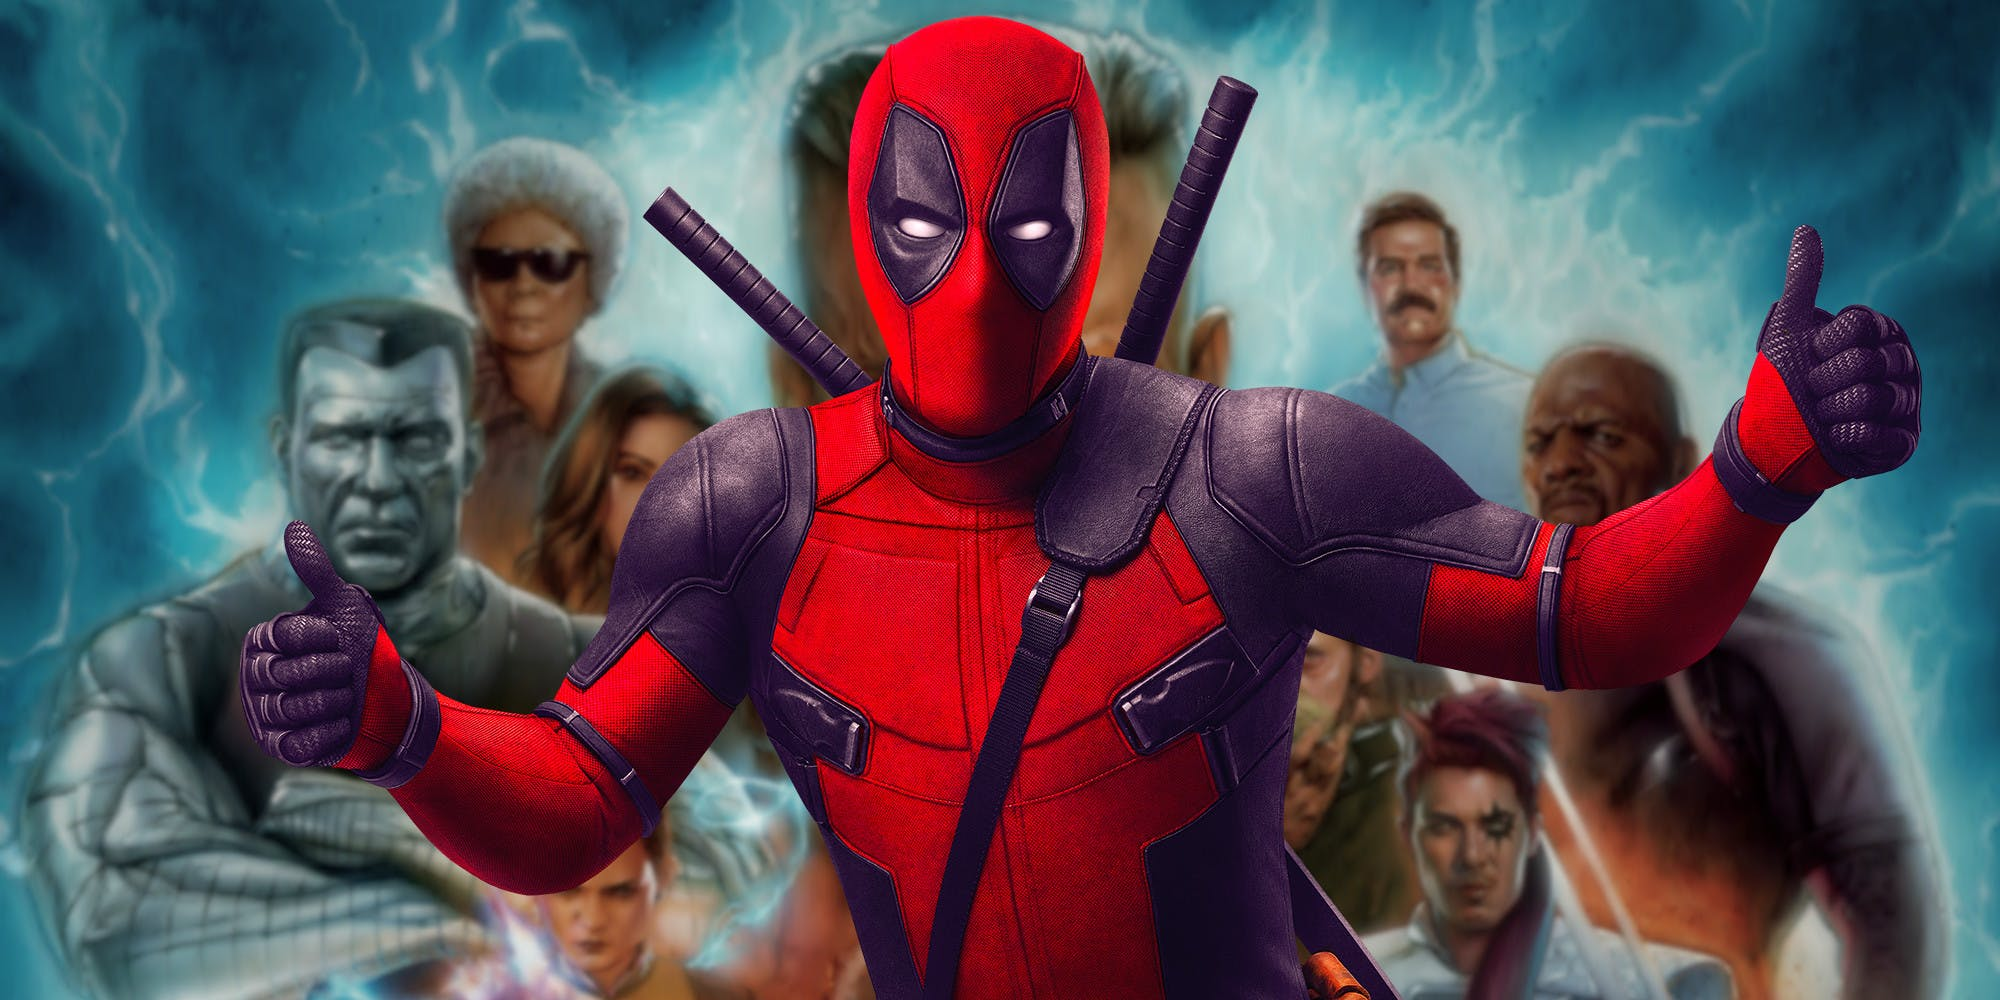 Deadpool Creator Says Marvel Has Zero Plans For Deadpool 3 And X-Force